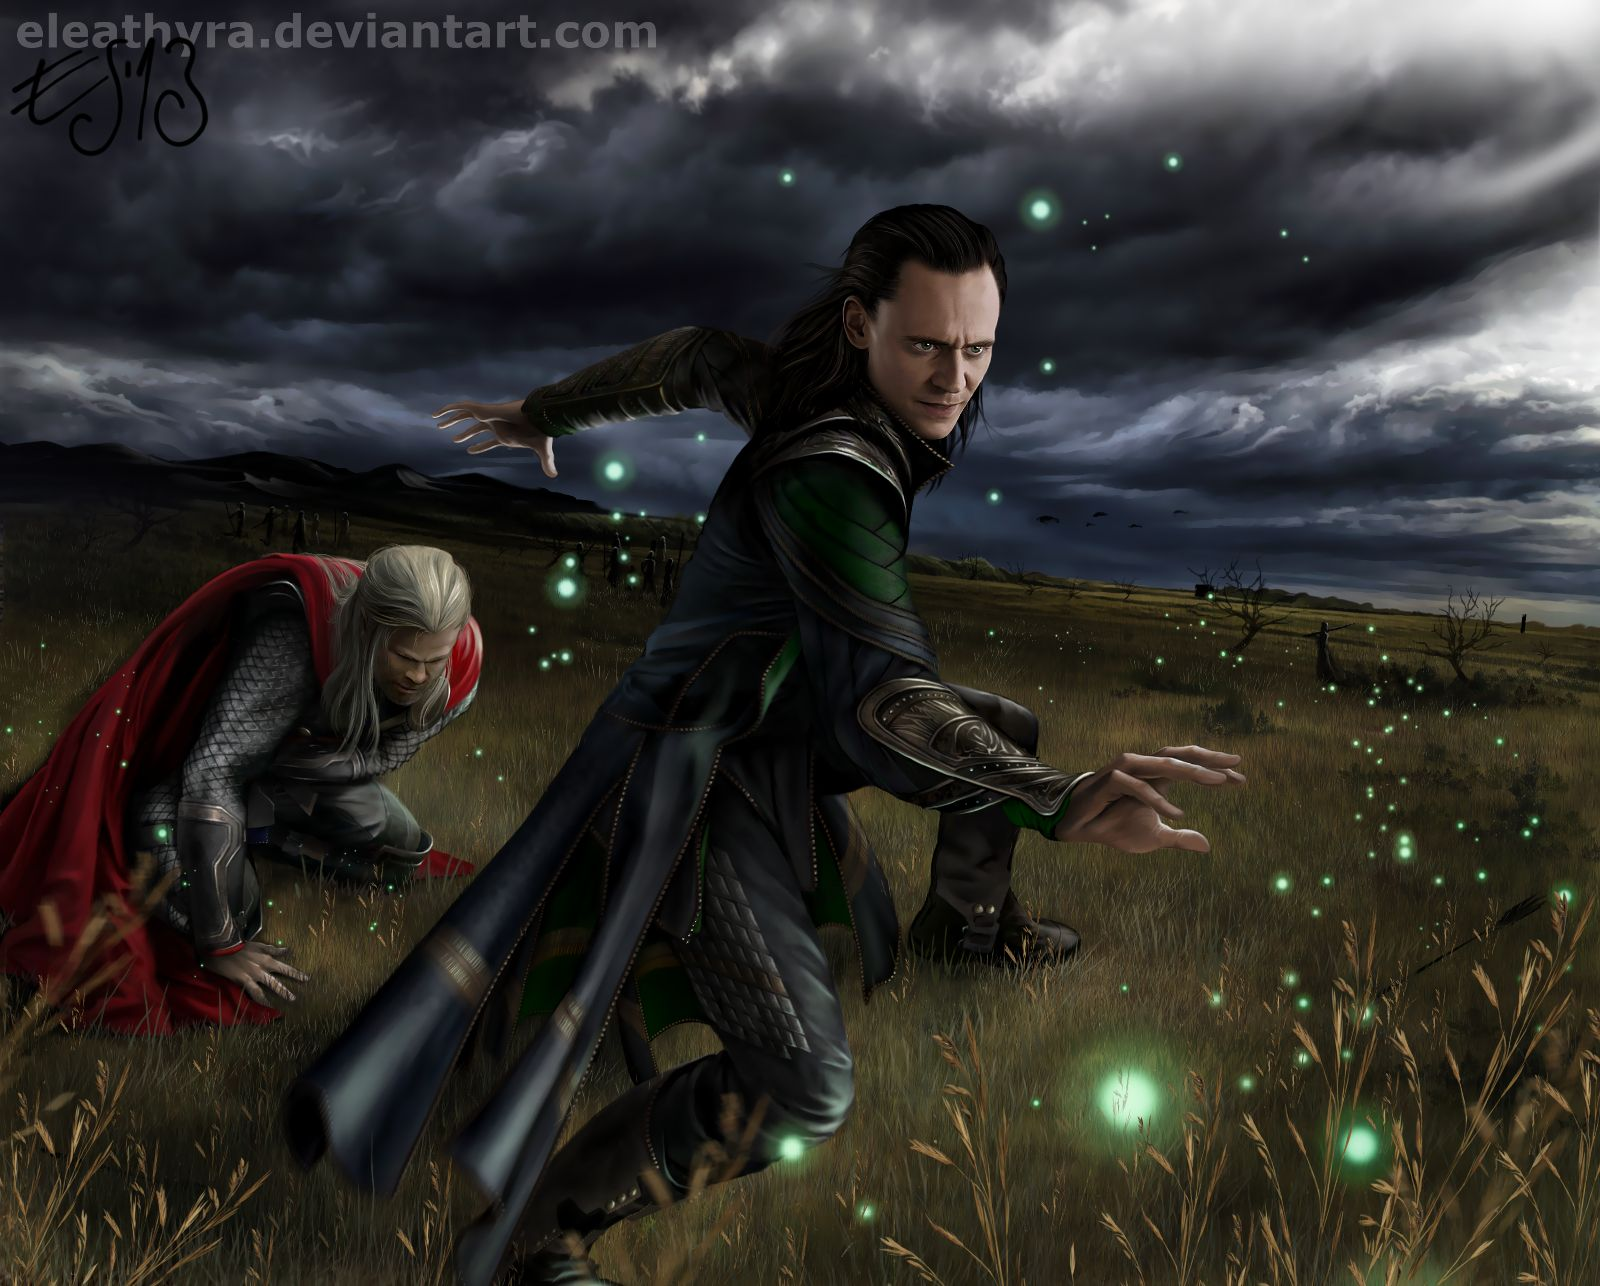 Thor And Loki By Eleathyra.deviantart.com On @deviantART